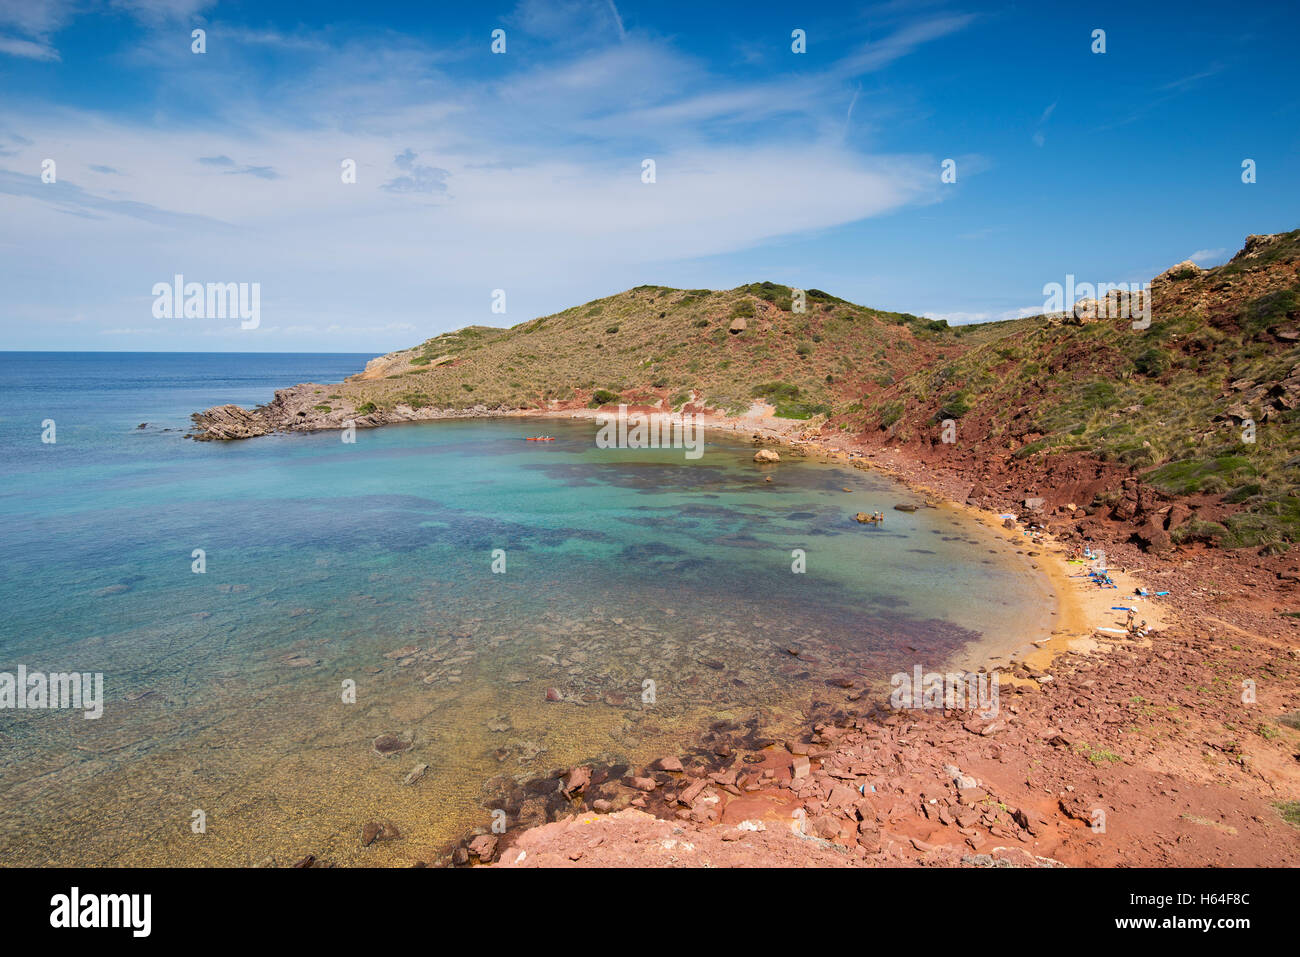 Spain, Balearic Islands, Caballeria beach - Stock Image